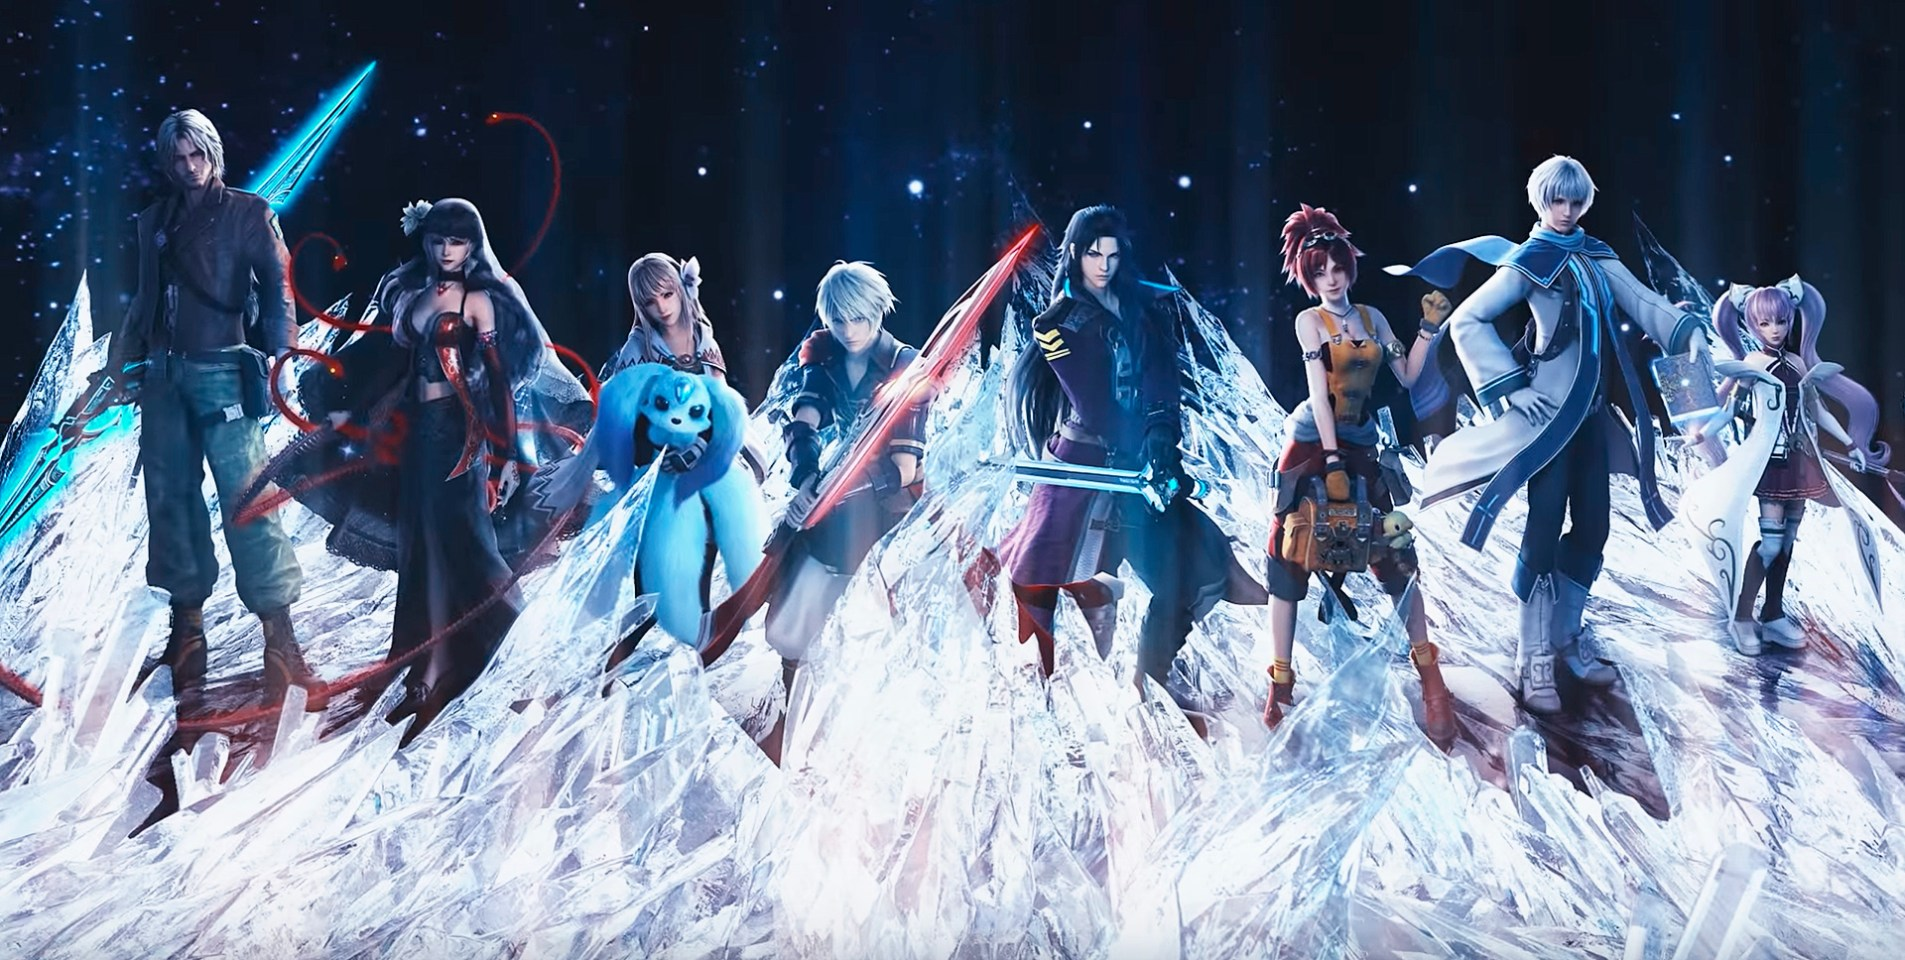 Lightning Returns Wallpaper Hd Brave Exvius Asks You To Touch It For A Final Fantasy